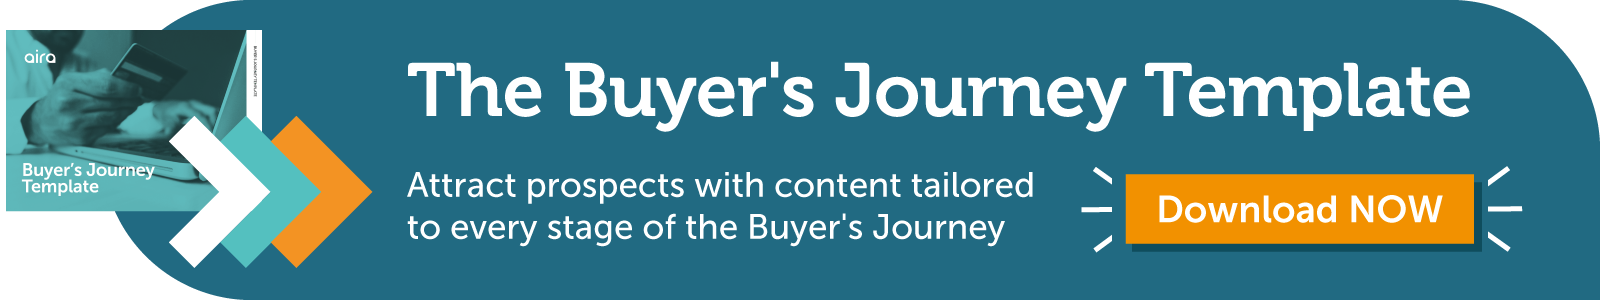 Download the Buyer's Journey Template